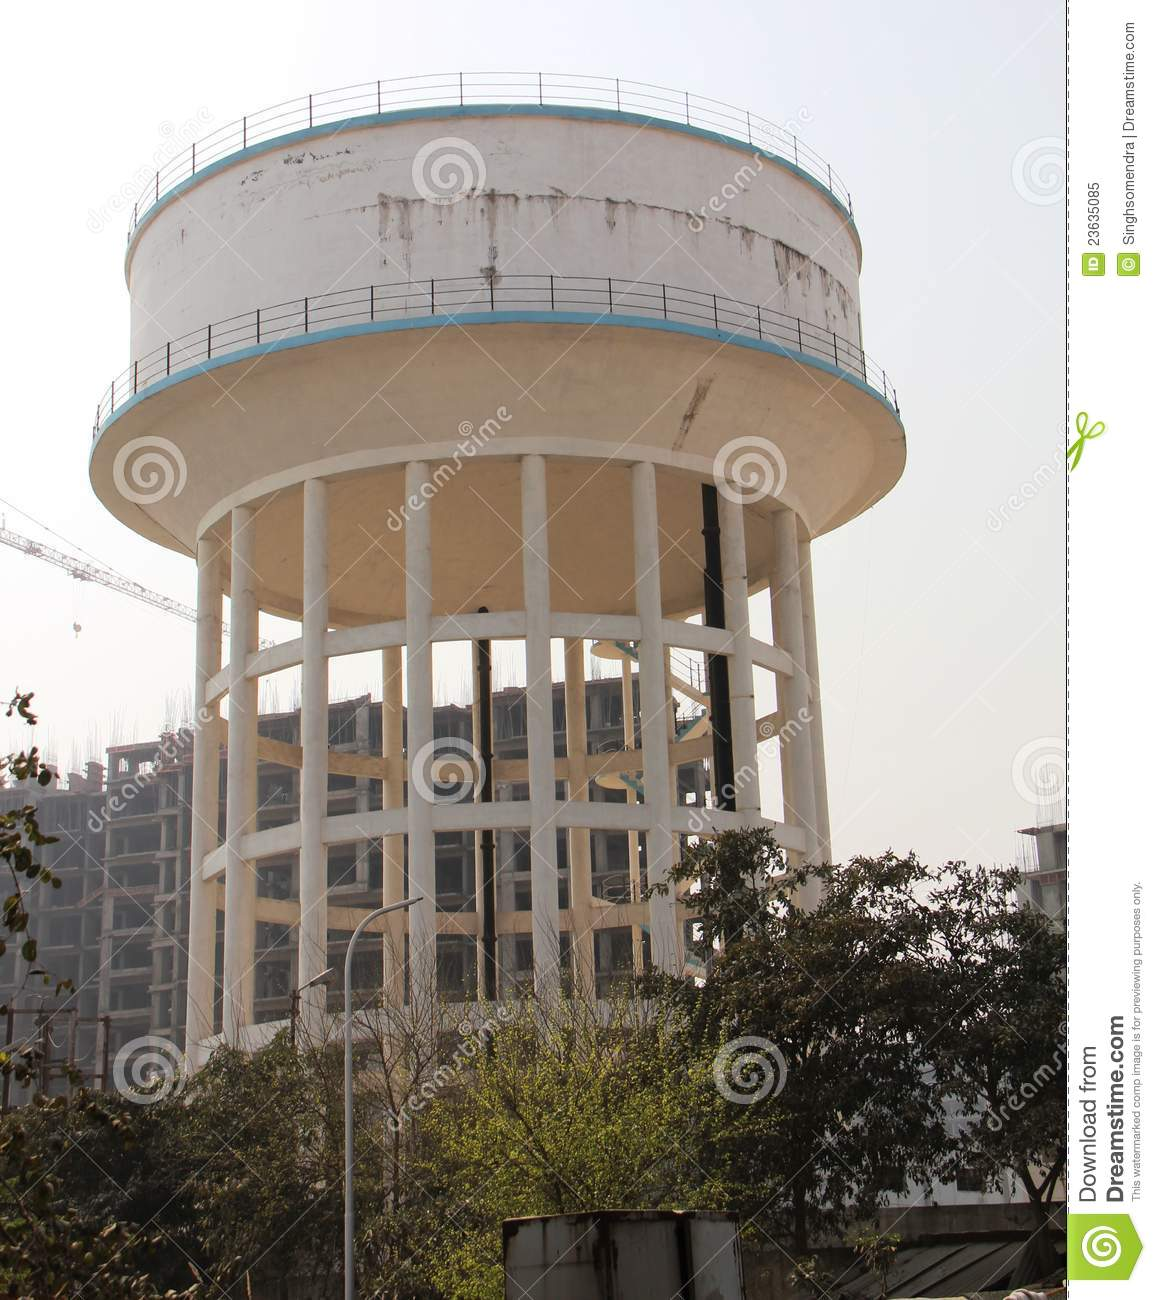 Water Tower Tank : Water tower tank storage building stock image of